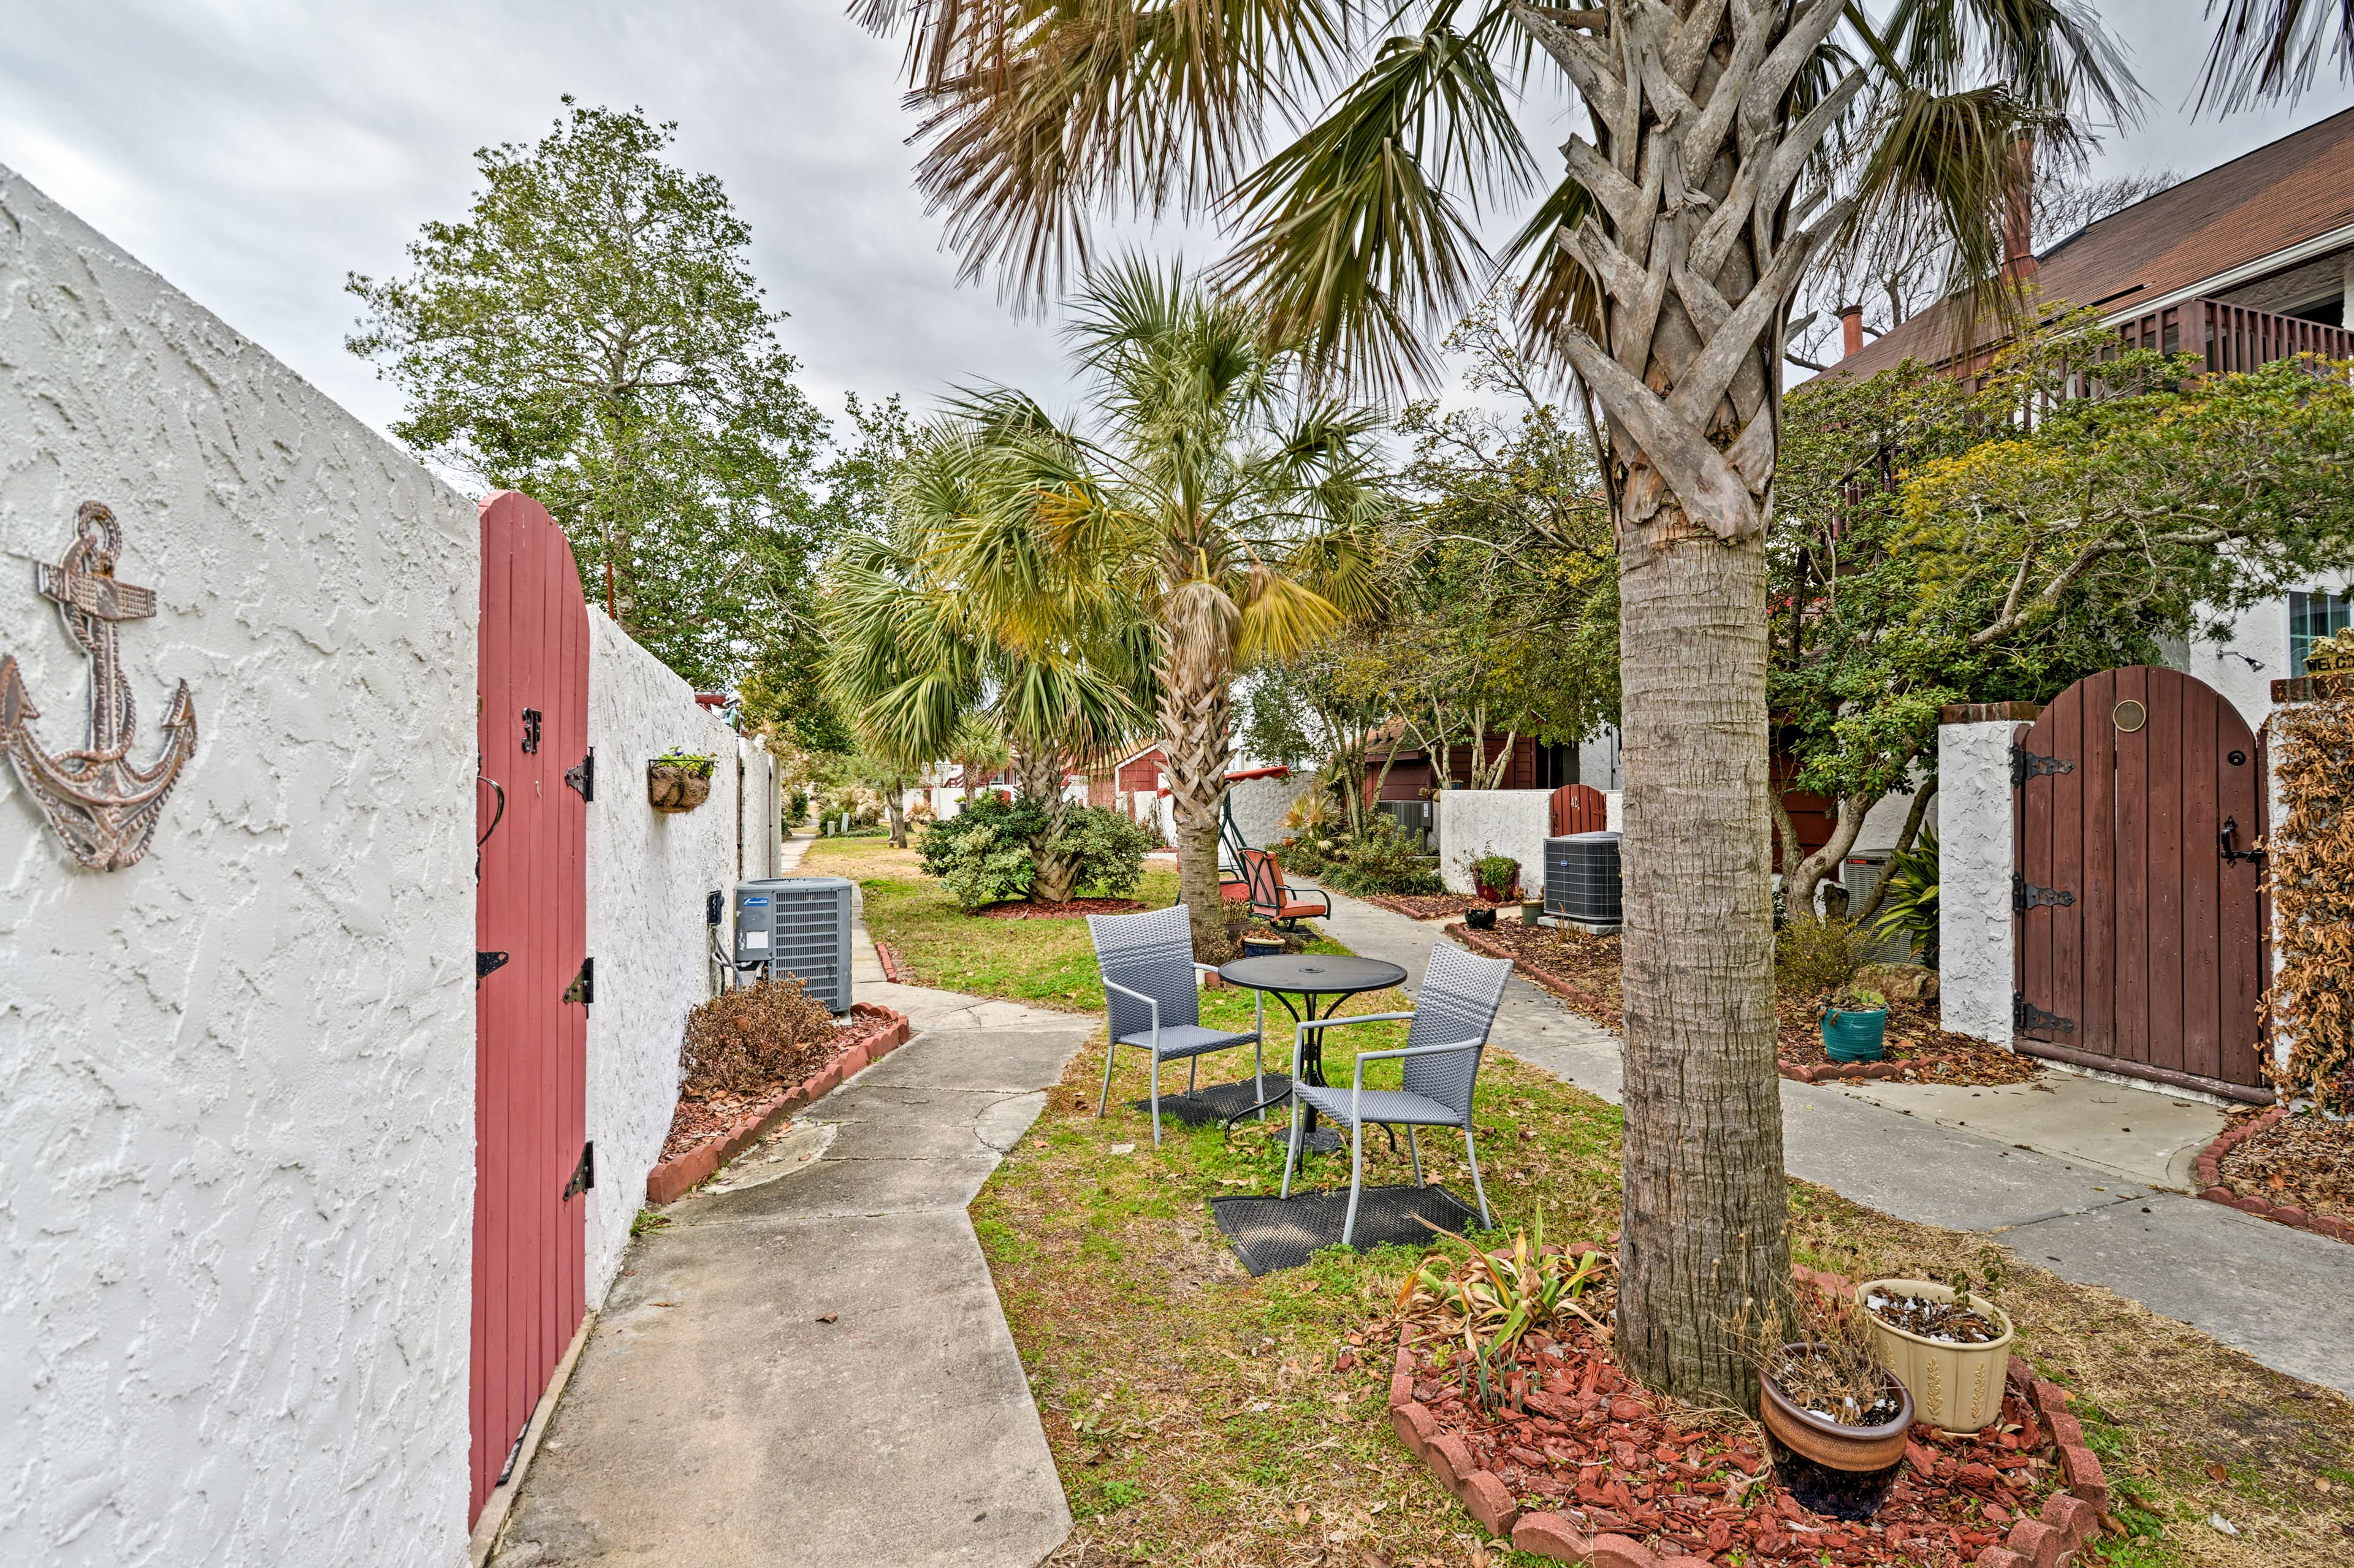 Palm trees lead the way to this charming home.